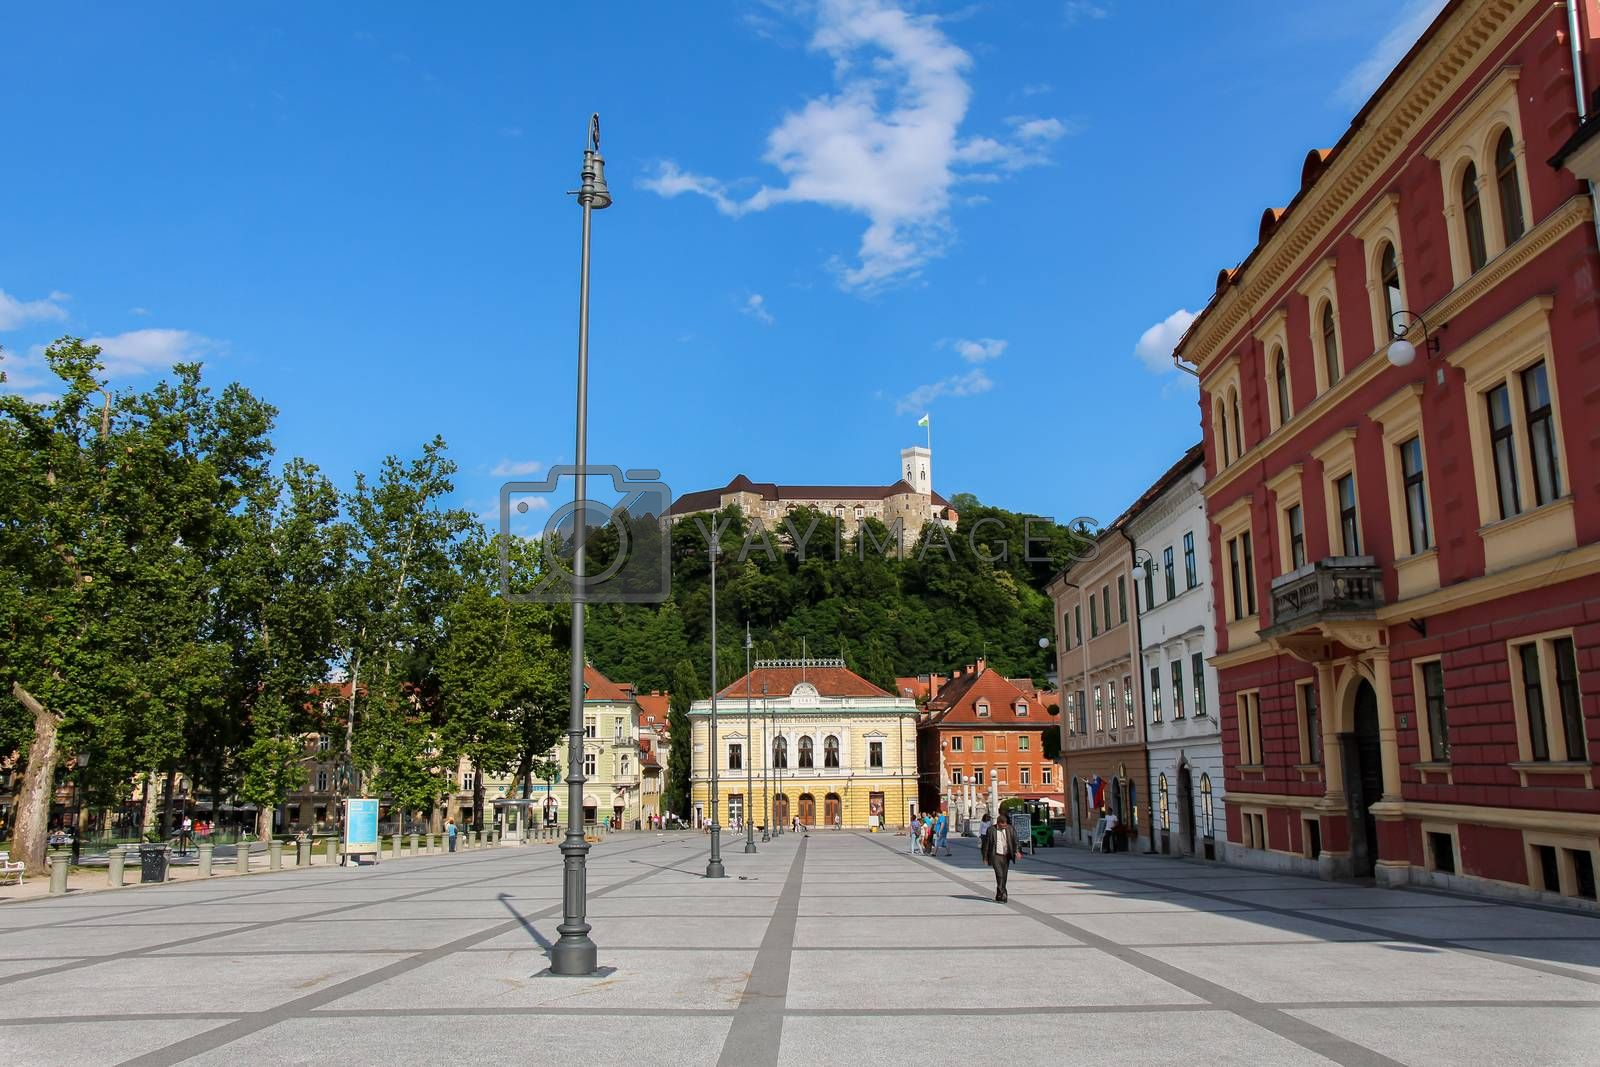 Ljubljana, Slovenia - July 16th 2018: Ljubljana, Slovenia - July 16th 2018: The park at Congress Square in the center of Ljubljana on a summers day, Slovenia, with the Slovenian Philharmonic Building in the background